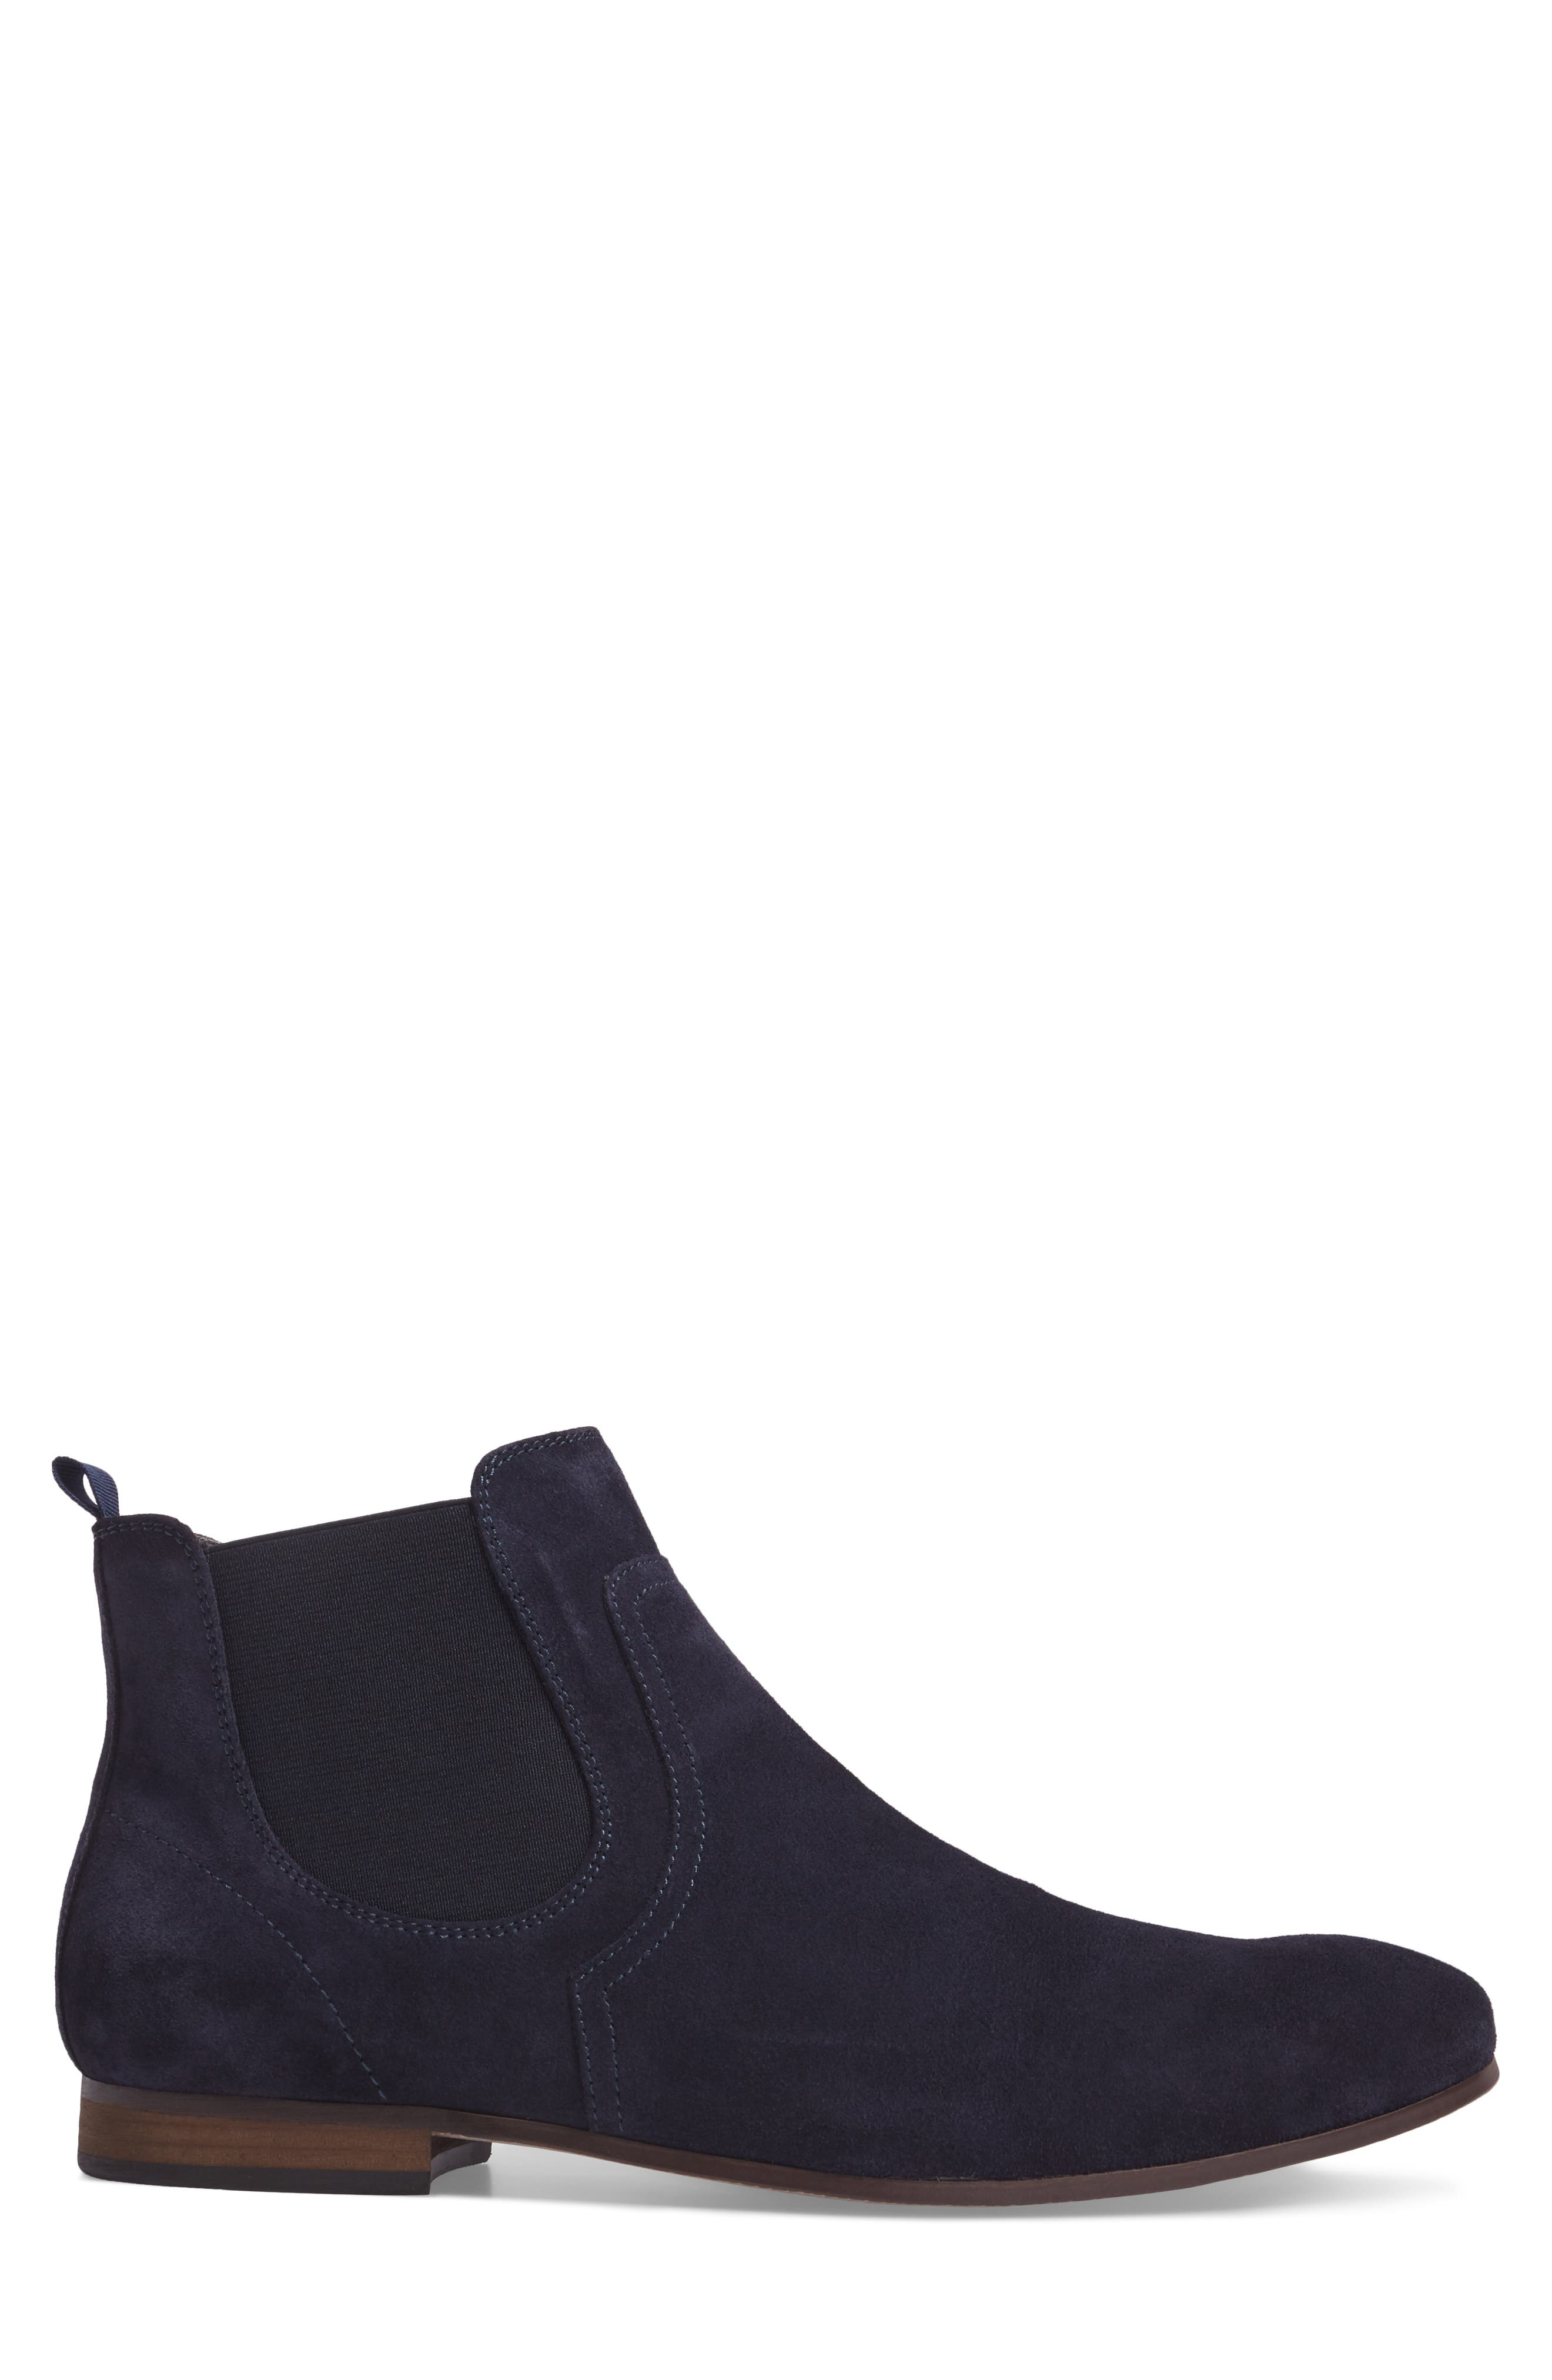 Brysen Chelsea Boot,                             Alternate thumbnail 3, color,                             Blue Suede